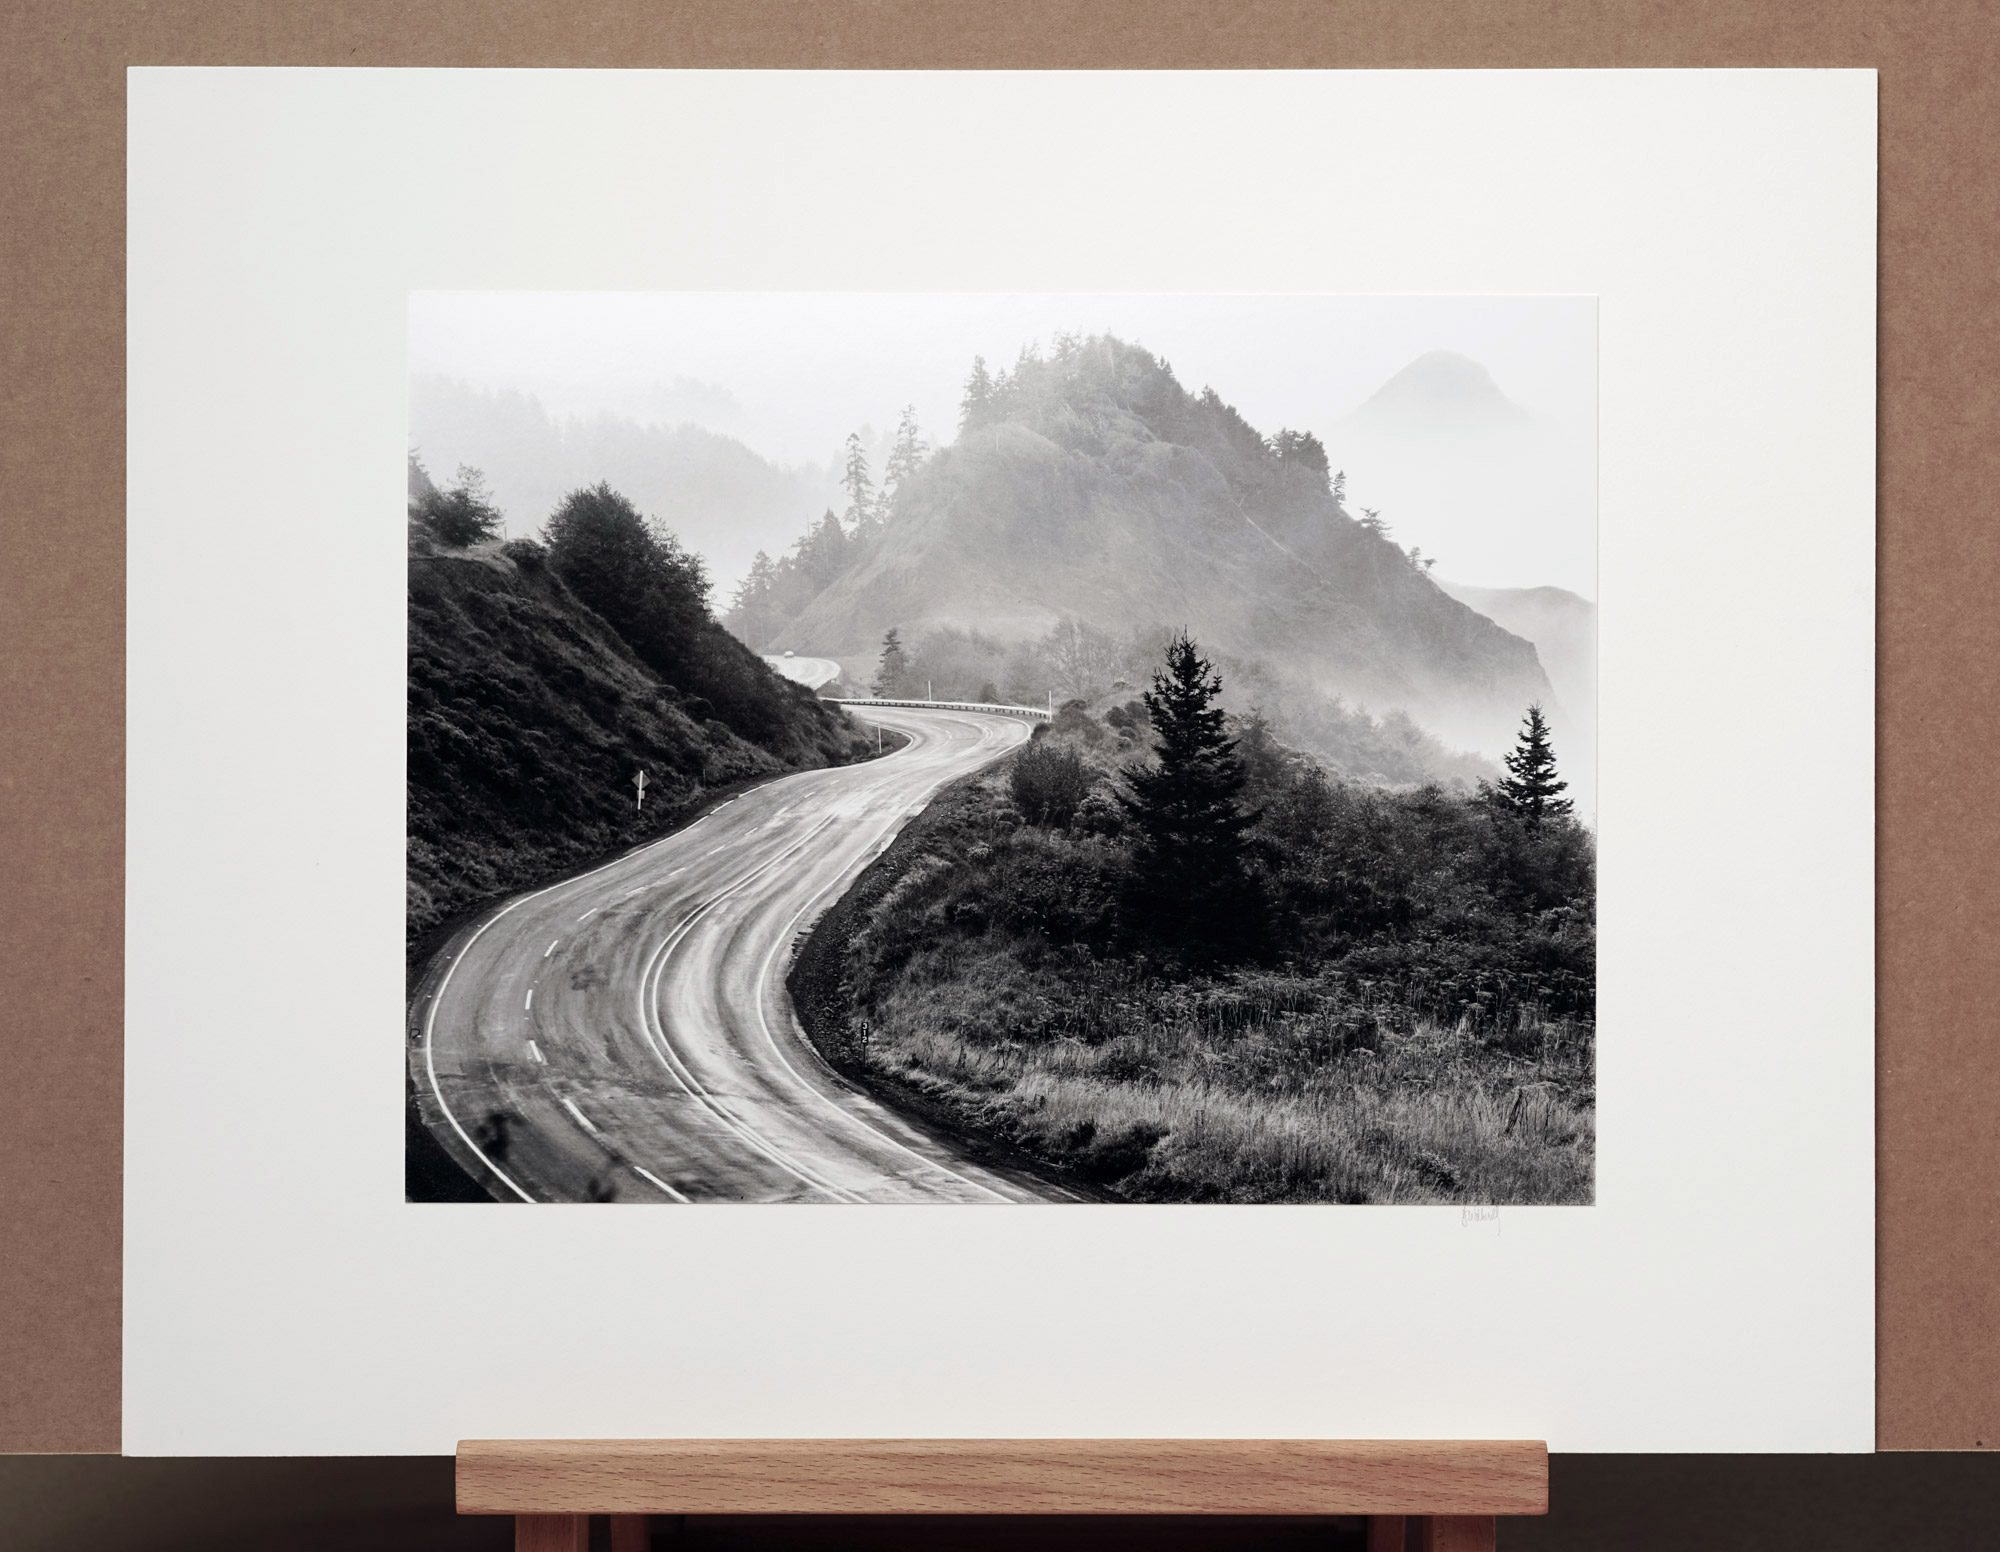 Route 101, Oregon, 1975 - 11x14